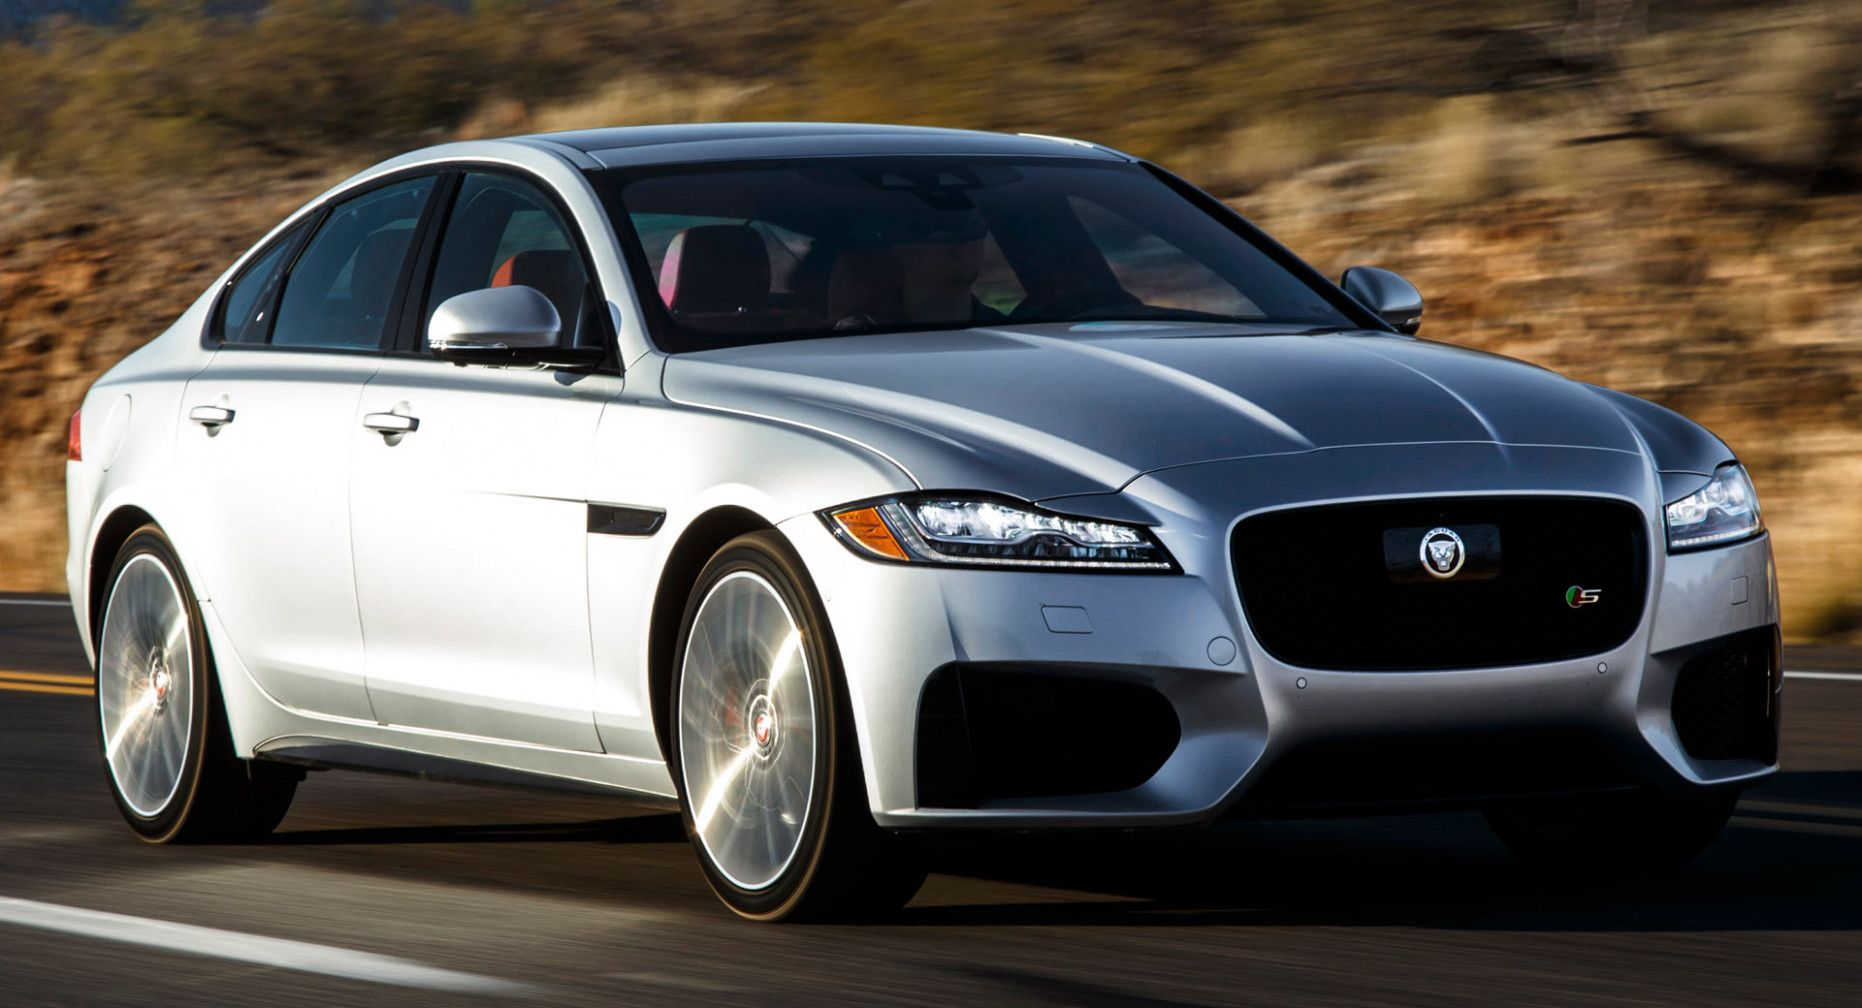 2020 Jaguar Diesel Reviews 2020 Car Reviews Mobil Teknologi